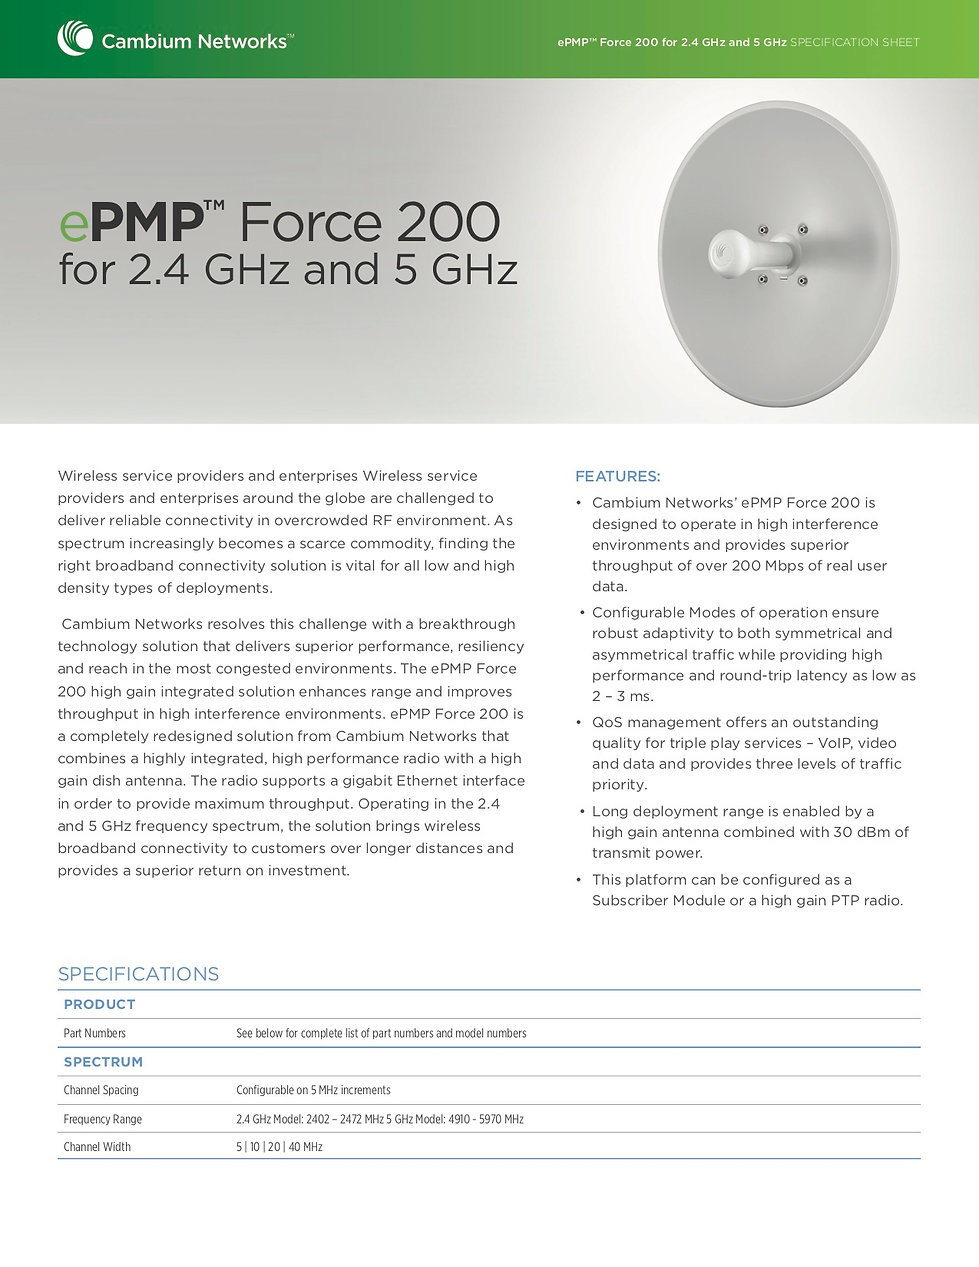 CambiumePMP Force 200 2.4 GHz and 5GHzSpecification